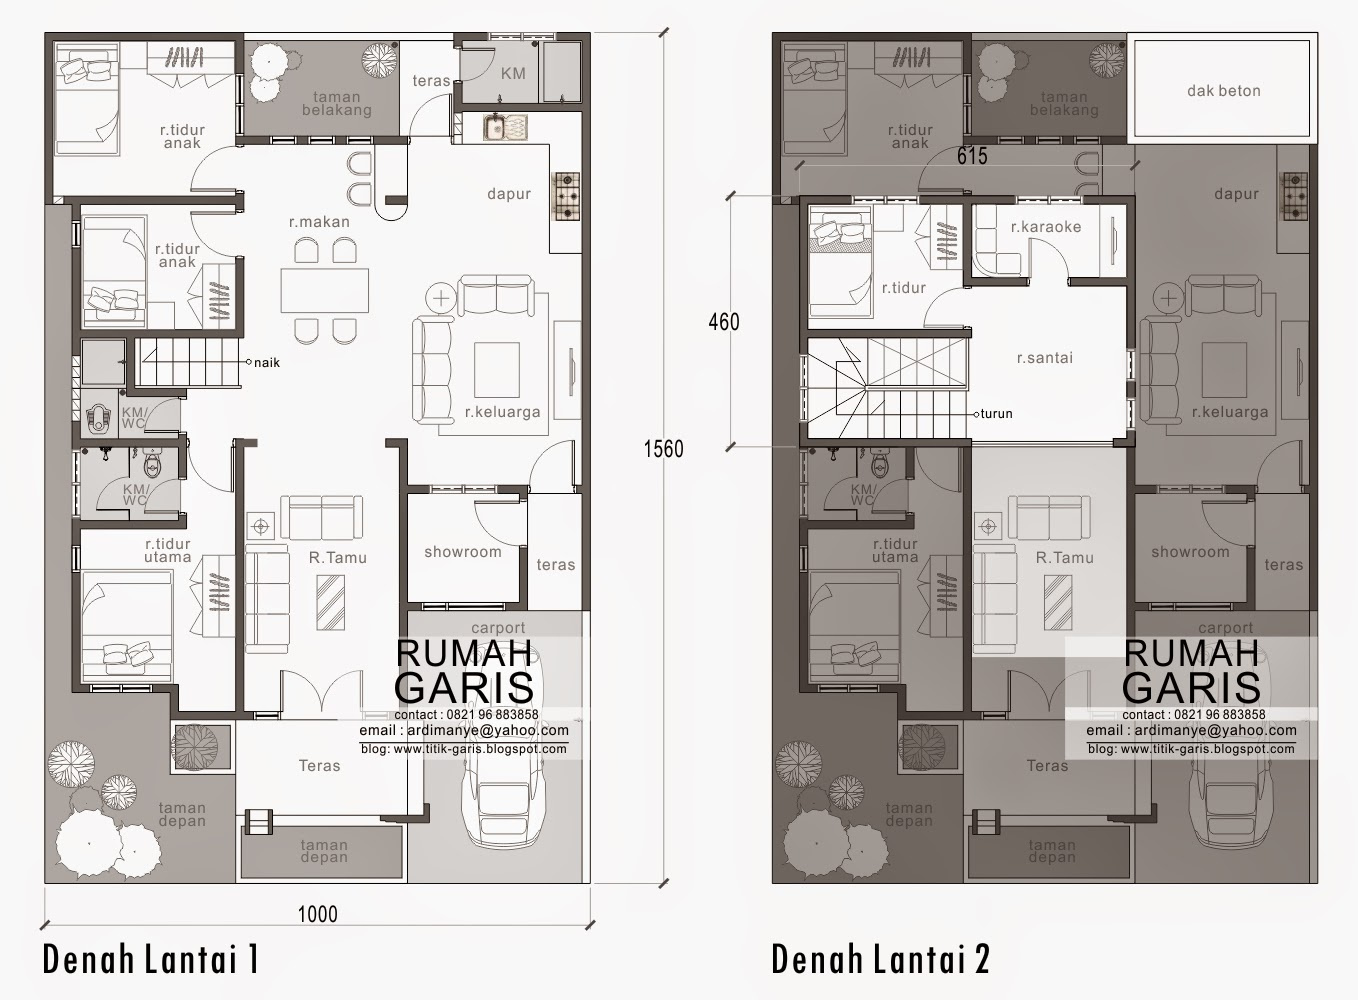 This three room house plan has a total floor area of 90 sq.m. which can be raised or worked in a 150 sq.m. parcel. With 10 meter facade, this one story design can advantageously ascend with fractional firewalls on the two sides.  The inside of the house is intended to be roomy by limiting gigantic dividers openly and semipublic zones. What's more, with the option of wide window openings that can without much of a stretch pass view to the back garden positively include all the more unreservedly amid the occasion or festivity in your residence HOUSE PLAN DESIGN ON 10X15 METER LOT Building area: 90 m2   Land Size: 10 x 15 meters   The main sleeping area (size 3mx5m) plus bathroom  Bedroom, 2 pieces (size 3mx3m)  Living room   Family room together with dining room and kitchen  Km / toilet  Shower/sink  Backyard garden and patio area of 9 m2  2-STOREY RESIDENTIAL HOUSE PLAN This house is made extraordinary in light of the fact that it is intended for 2 stories yet when seen from the front looks like only a house 1 story.   Land Area: 10 x 15.6 meters   Building Area: Lt.1 = 112 m2 and Lt.2 = 28  1st floor Master bedroom  2 bedrooms  Living room  Family room  Minibar & kitchen  Km / WC  Bathroom/laundry room  Garden and back porch  Showroom  2nd Floor Bedroom  Karaoke room  The lounge This home plan is made as agreeable as conceivable by increasing openings to amplify air and light that go into each room and keep the room has a view to the front garden and back of the house.  Land Area: 8 x 19 meters   Building Area: 210 m2  Master bedroom plus km / WC  Child's bedroom  Guest room  Living room  Family room  Kitchen   The dining room  Km / WC  Laundry area and drying area  Garden/back porch and side of house carport  SOURCE: Rumah Garis  RELATED POSTS: